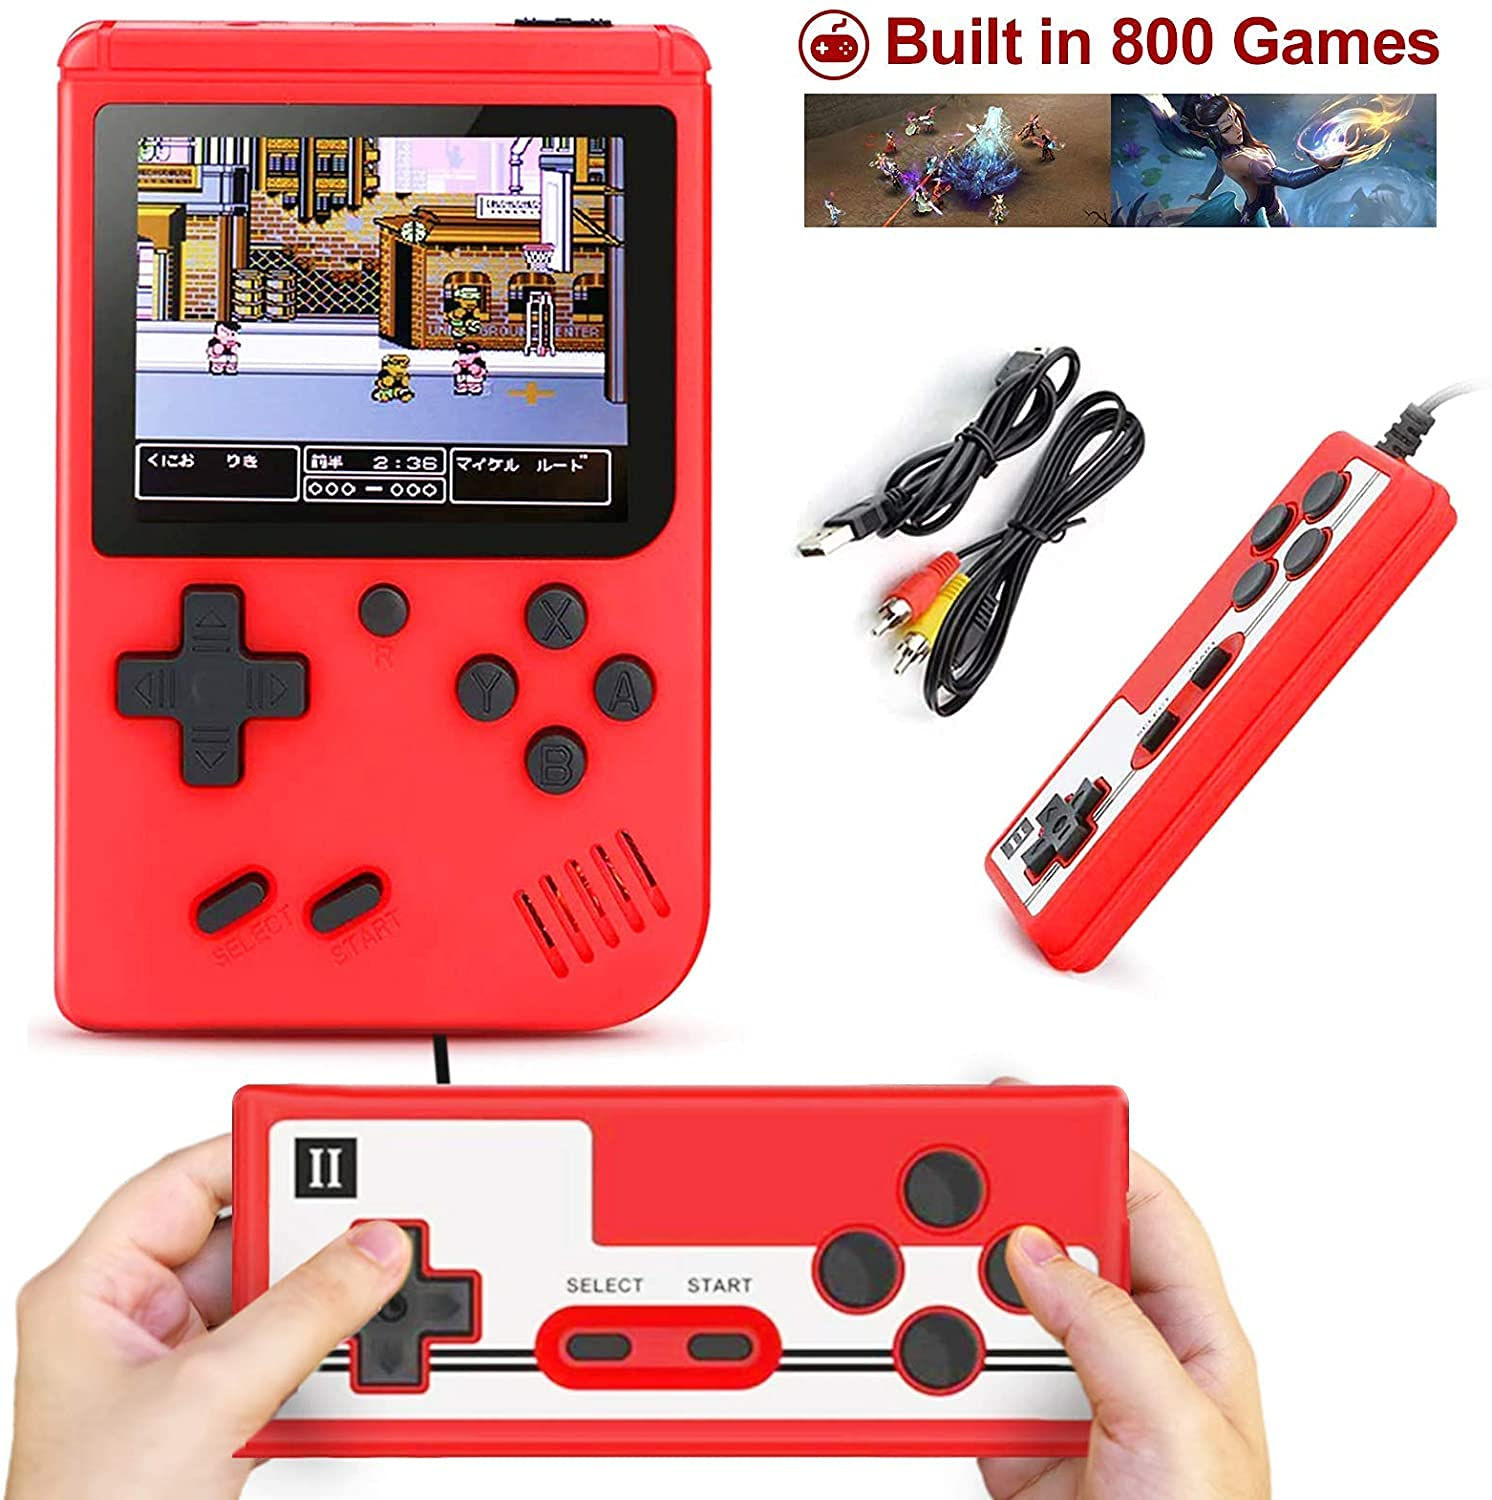 Panghuhu88 Handheld Manufacturer regenerated product Game Console Sale SALE% OFF Player Classic Mini Retro